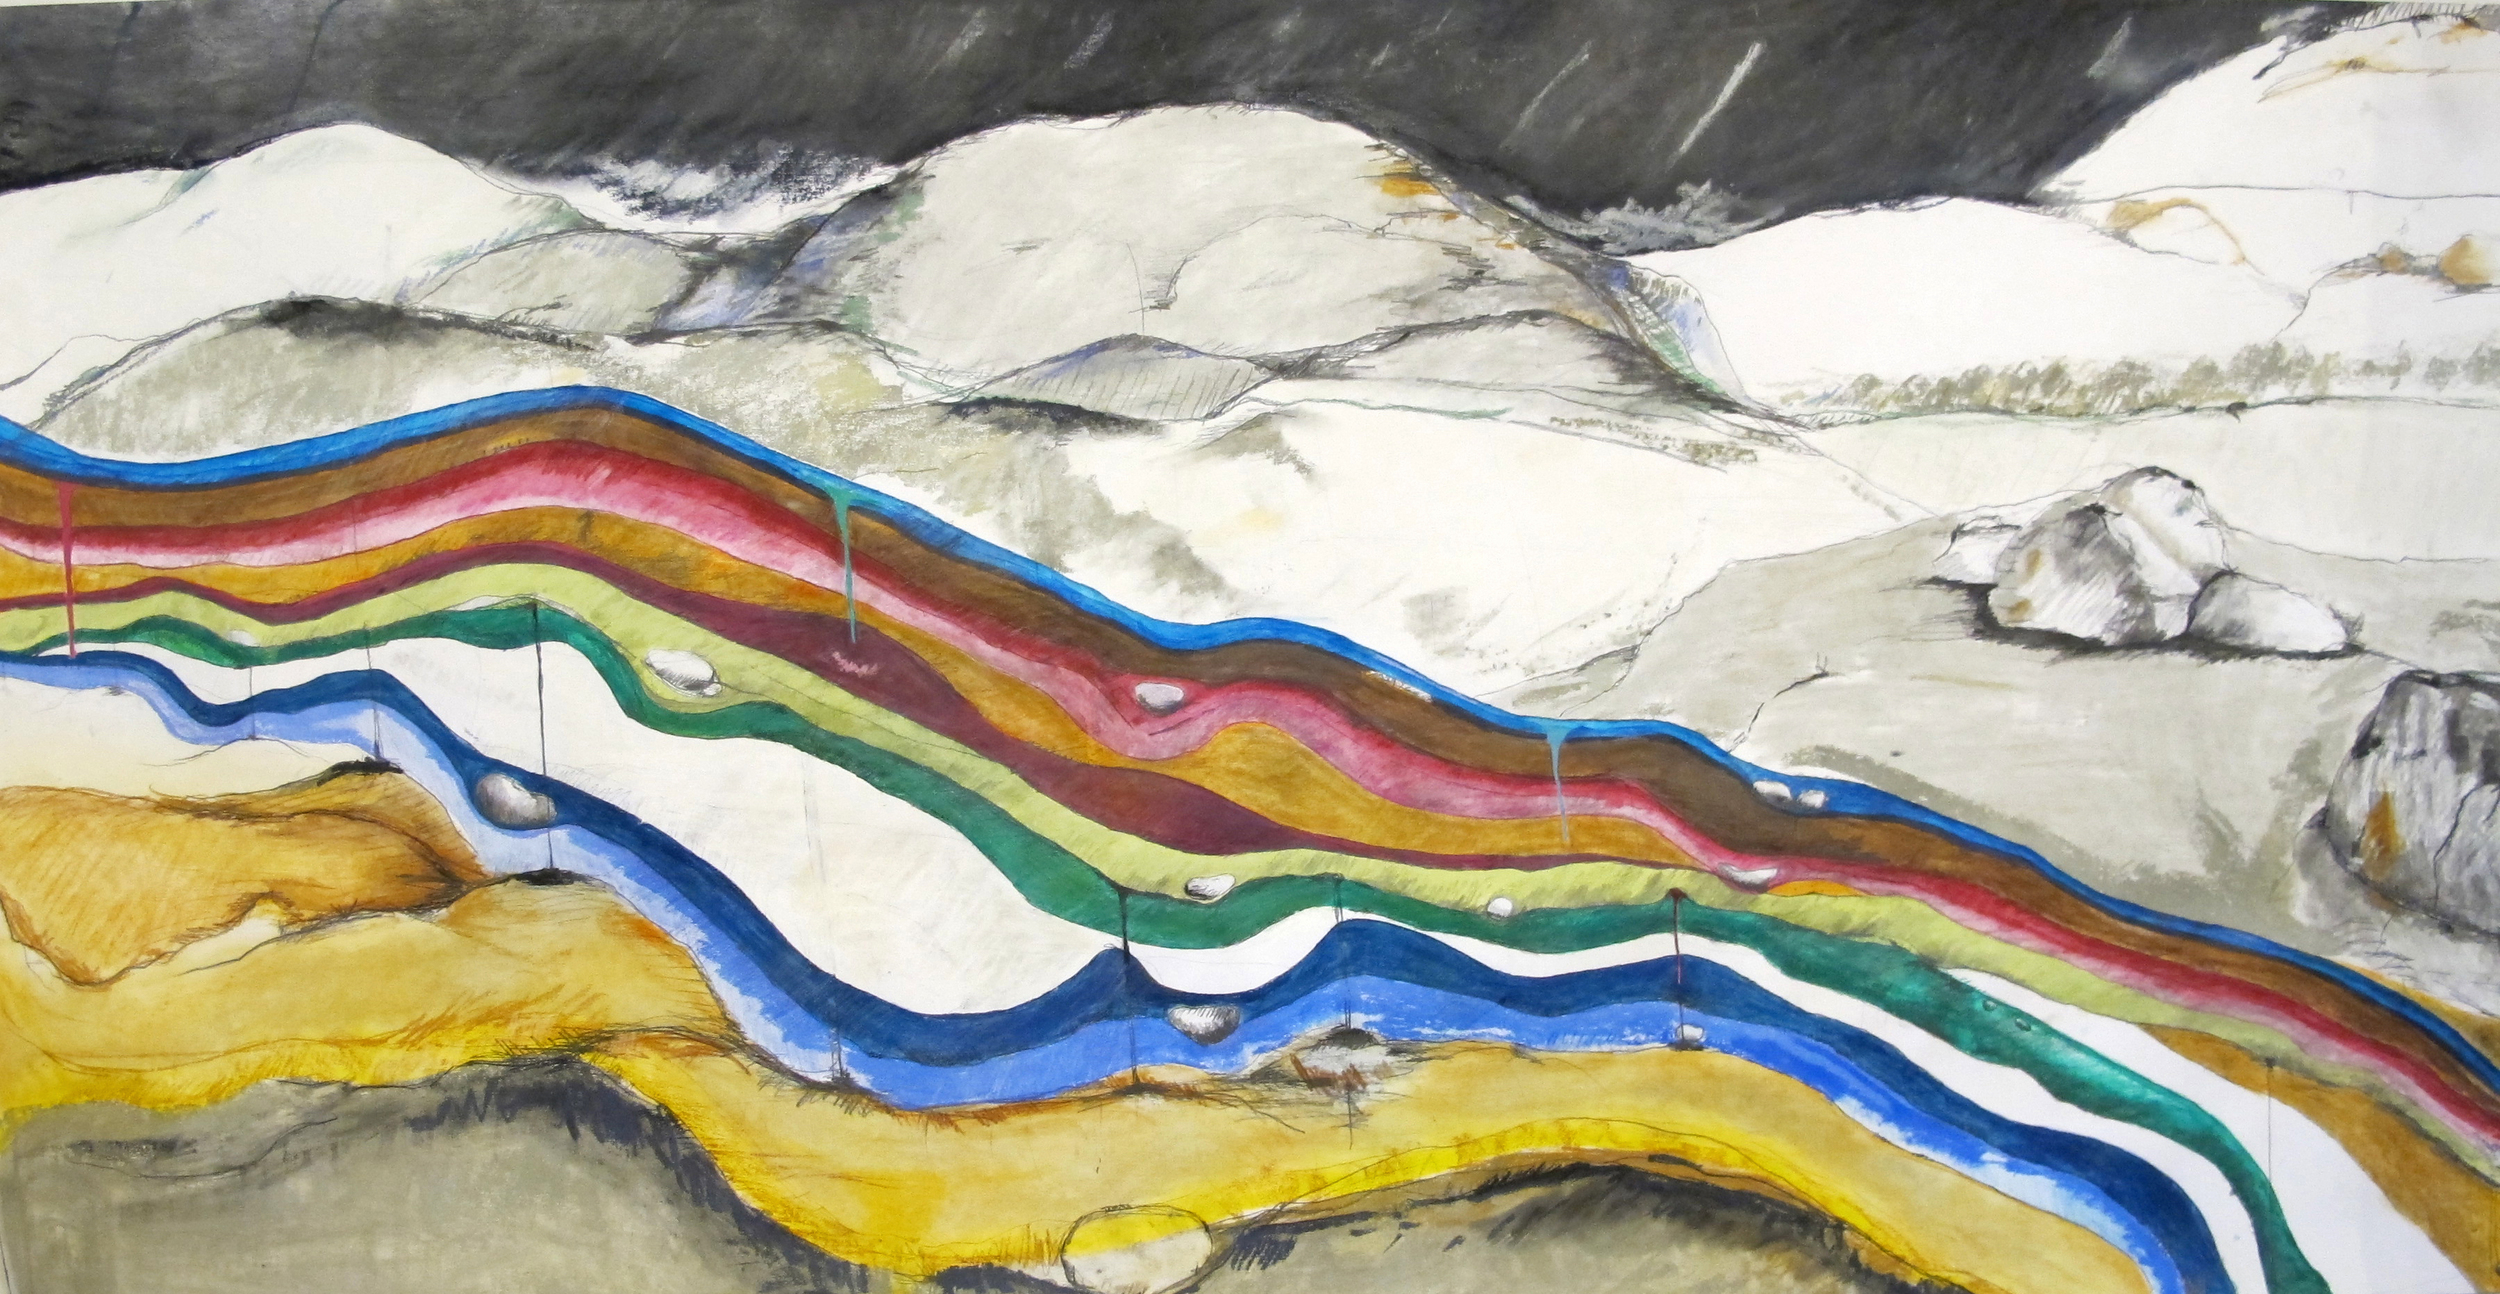 Jennifer Odem     Underpinning   , 2011    Charcoal, watercolor, and pencil on paper    36 x 69.5 inches